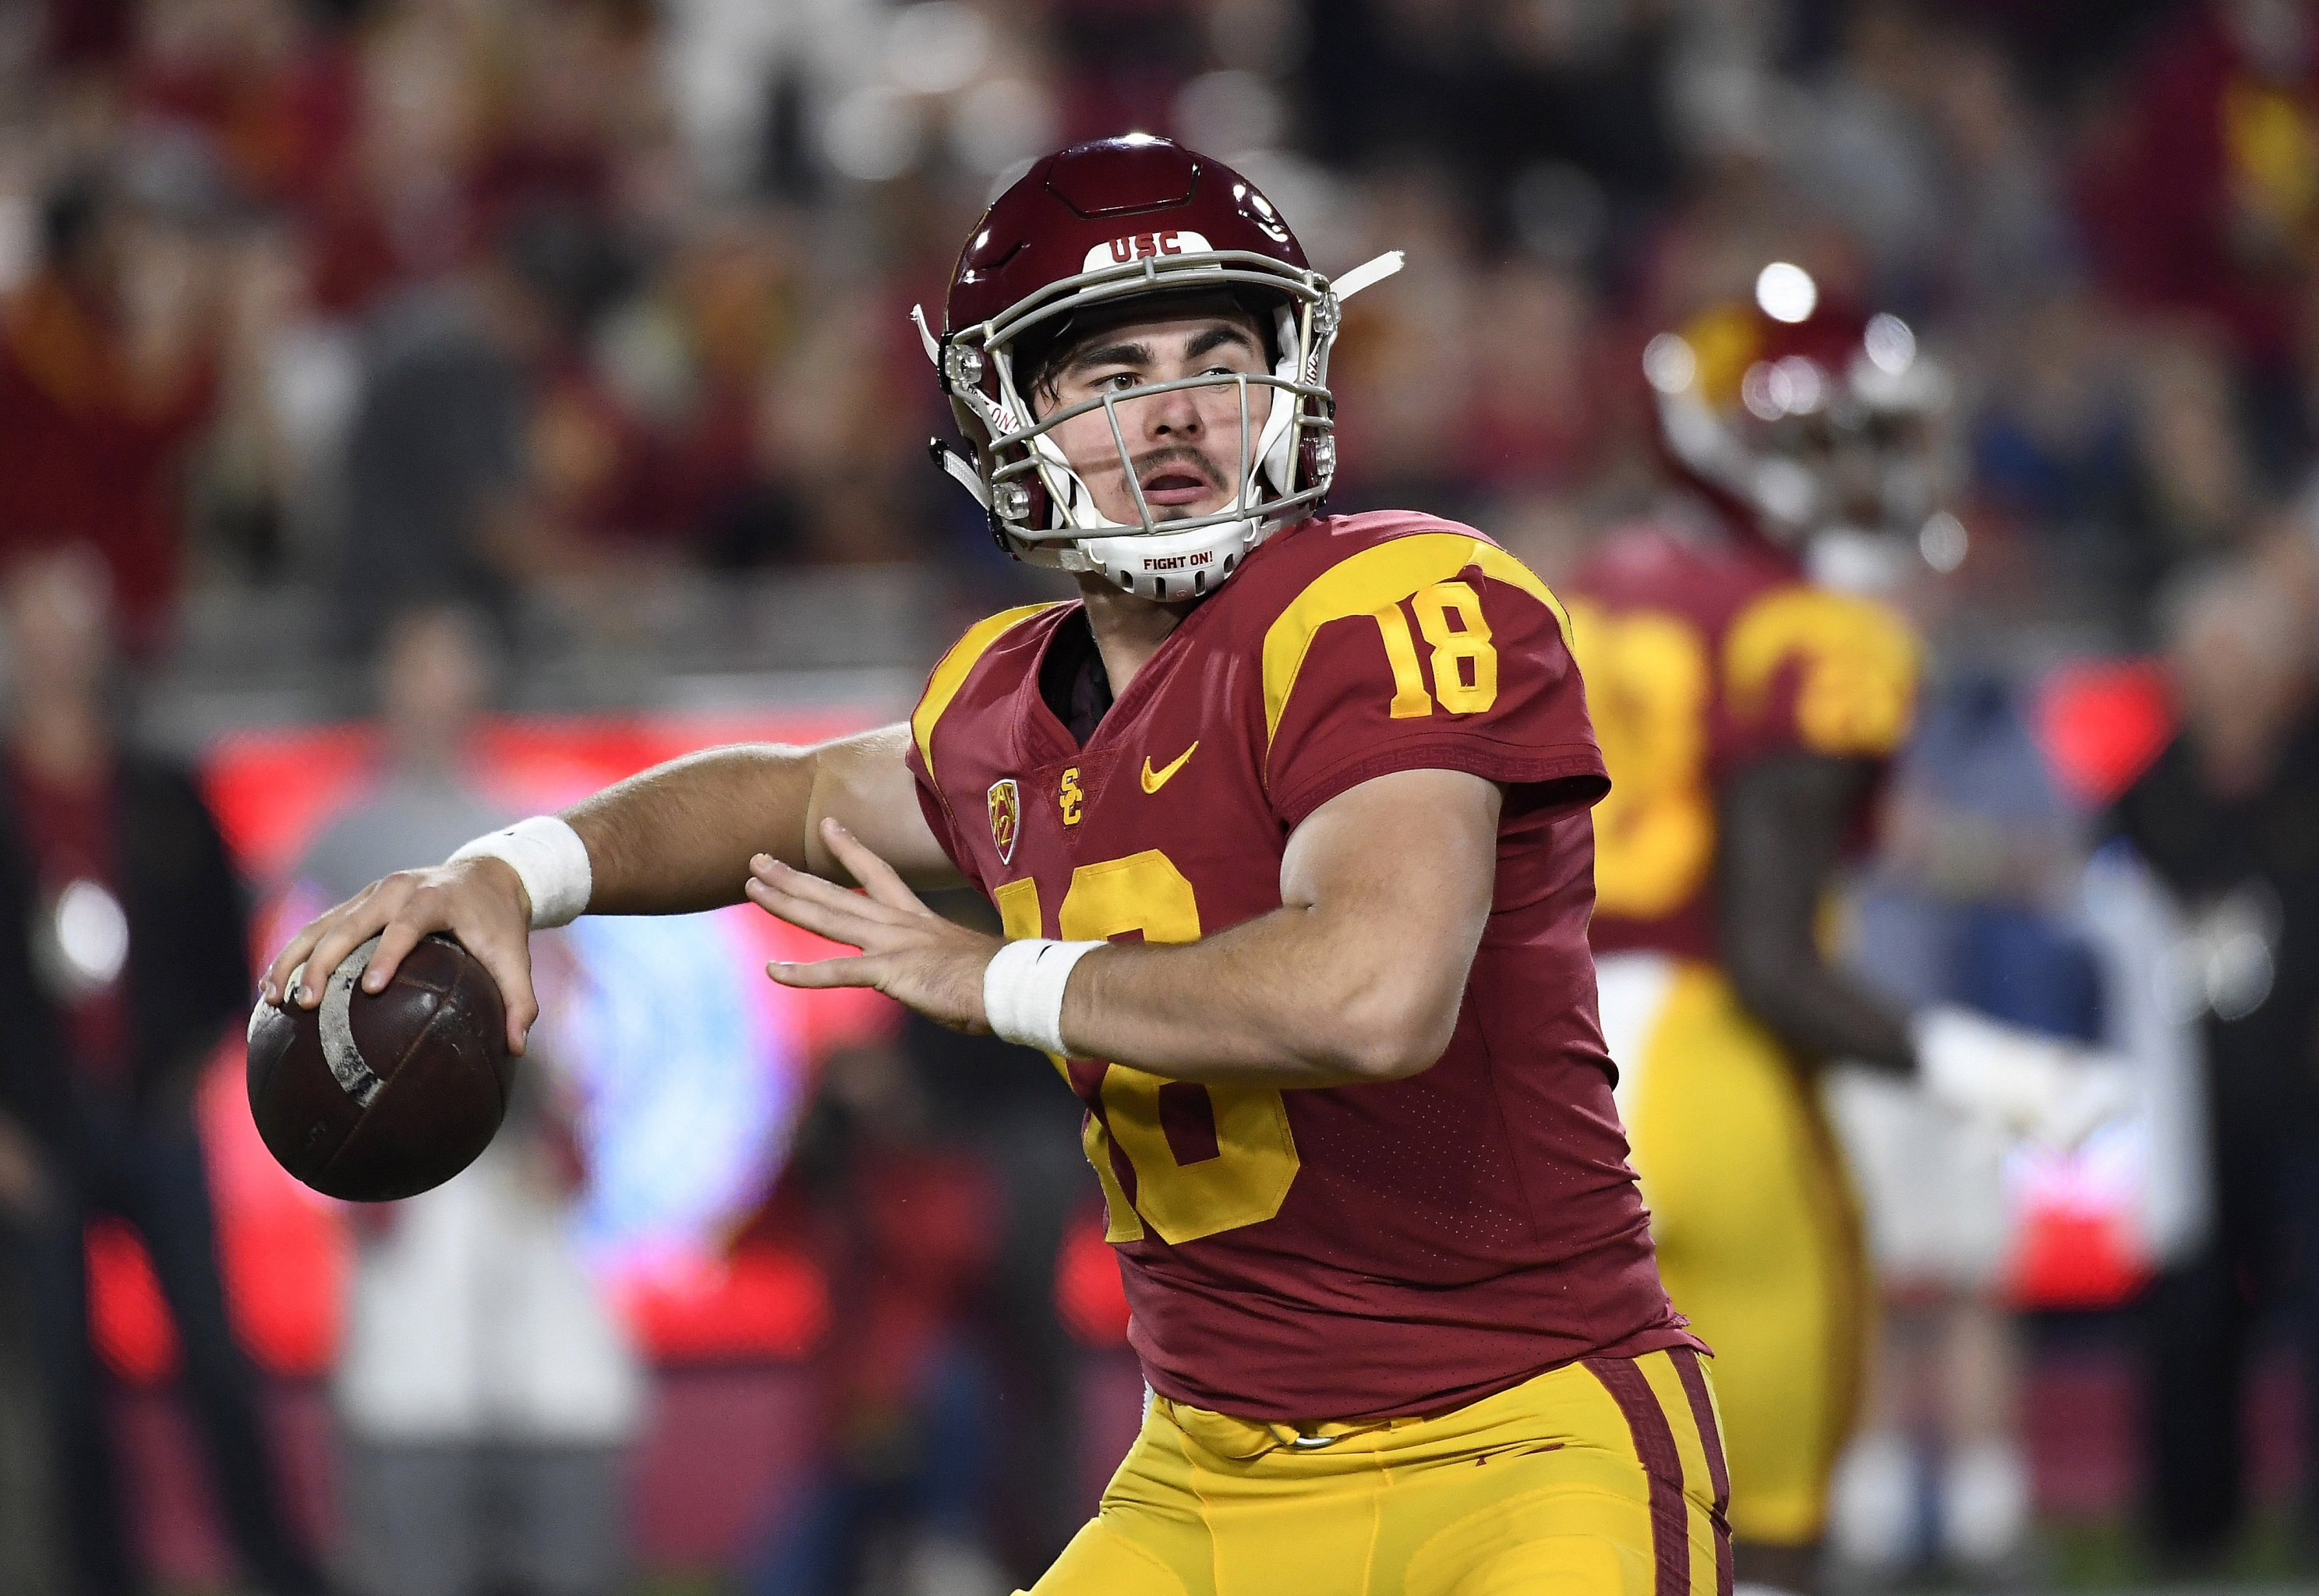 Ranking the Top Candidates for the 2019 Heisman Trophy